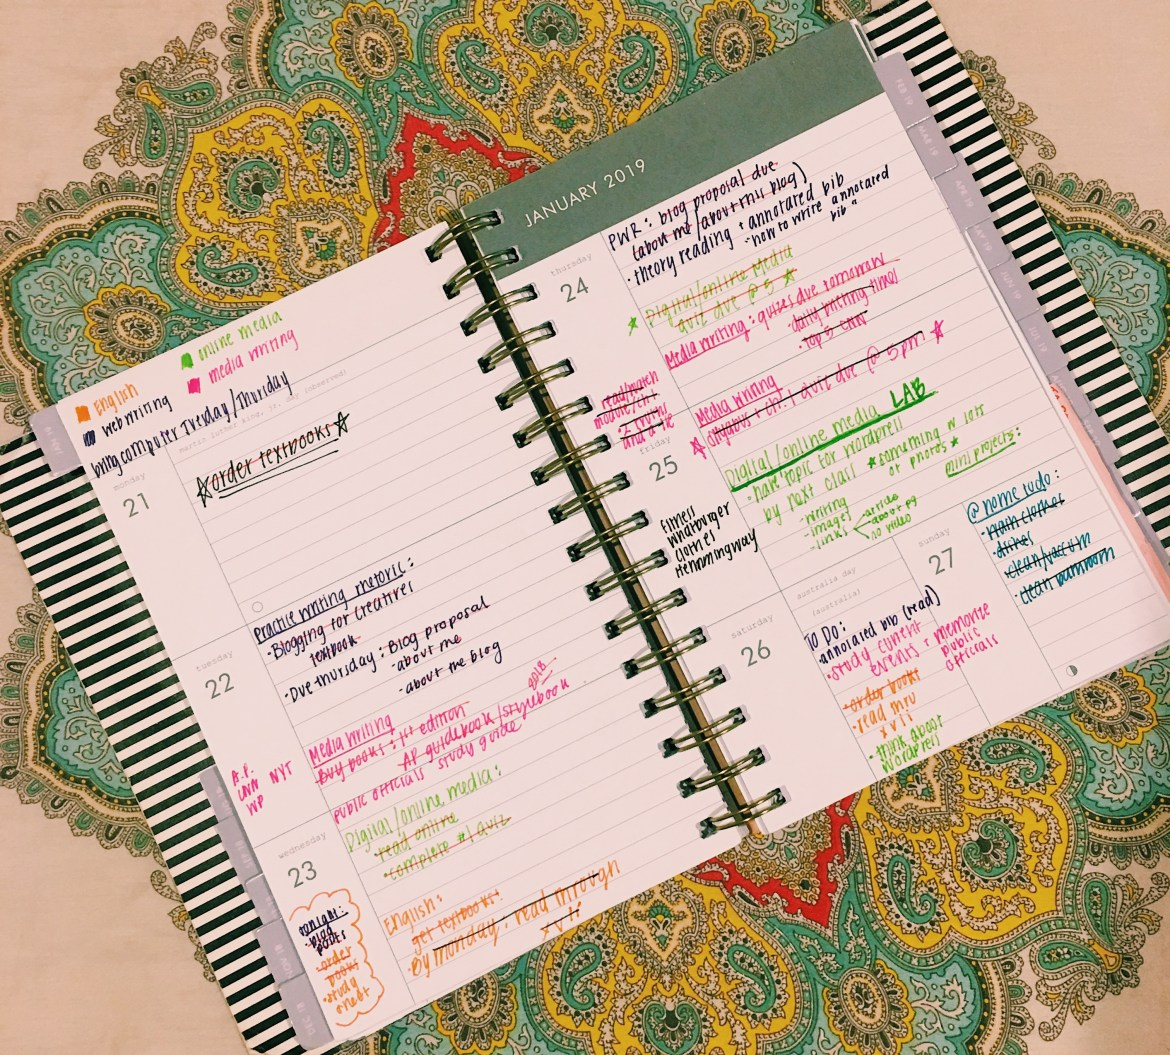 An image of what a week looks like in my planner. Multiple things written out in different colors.